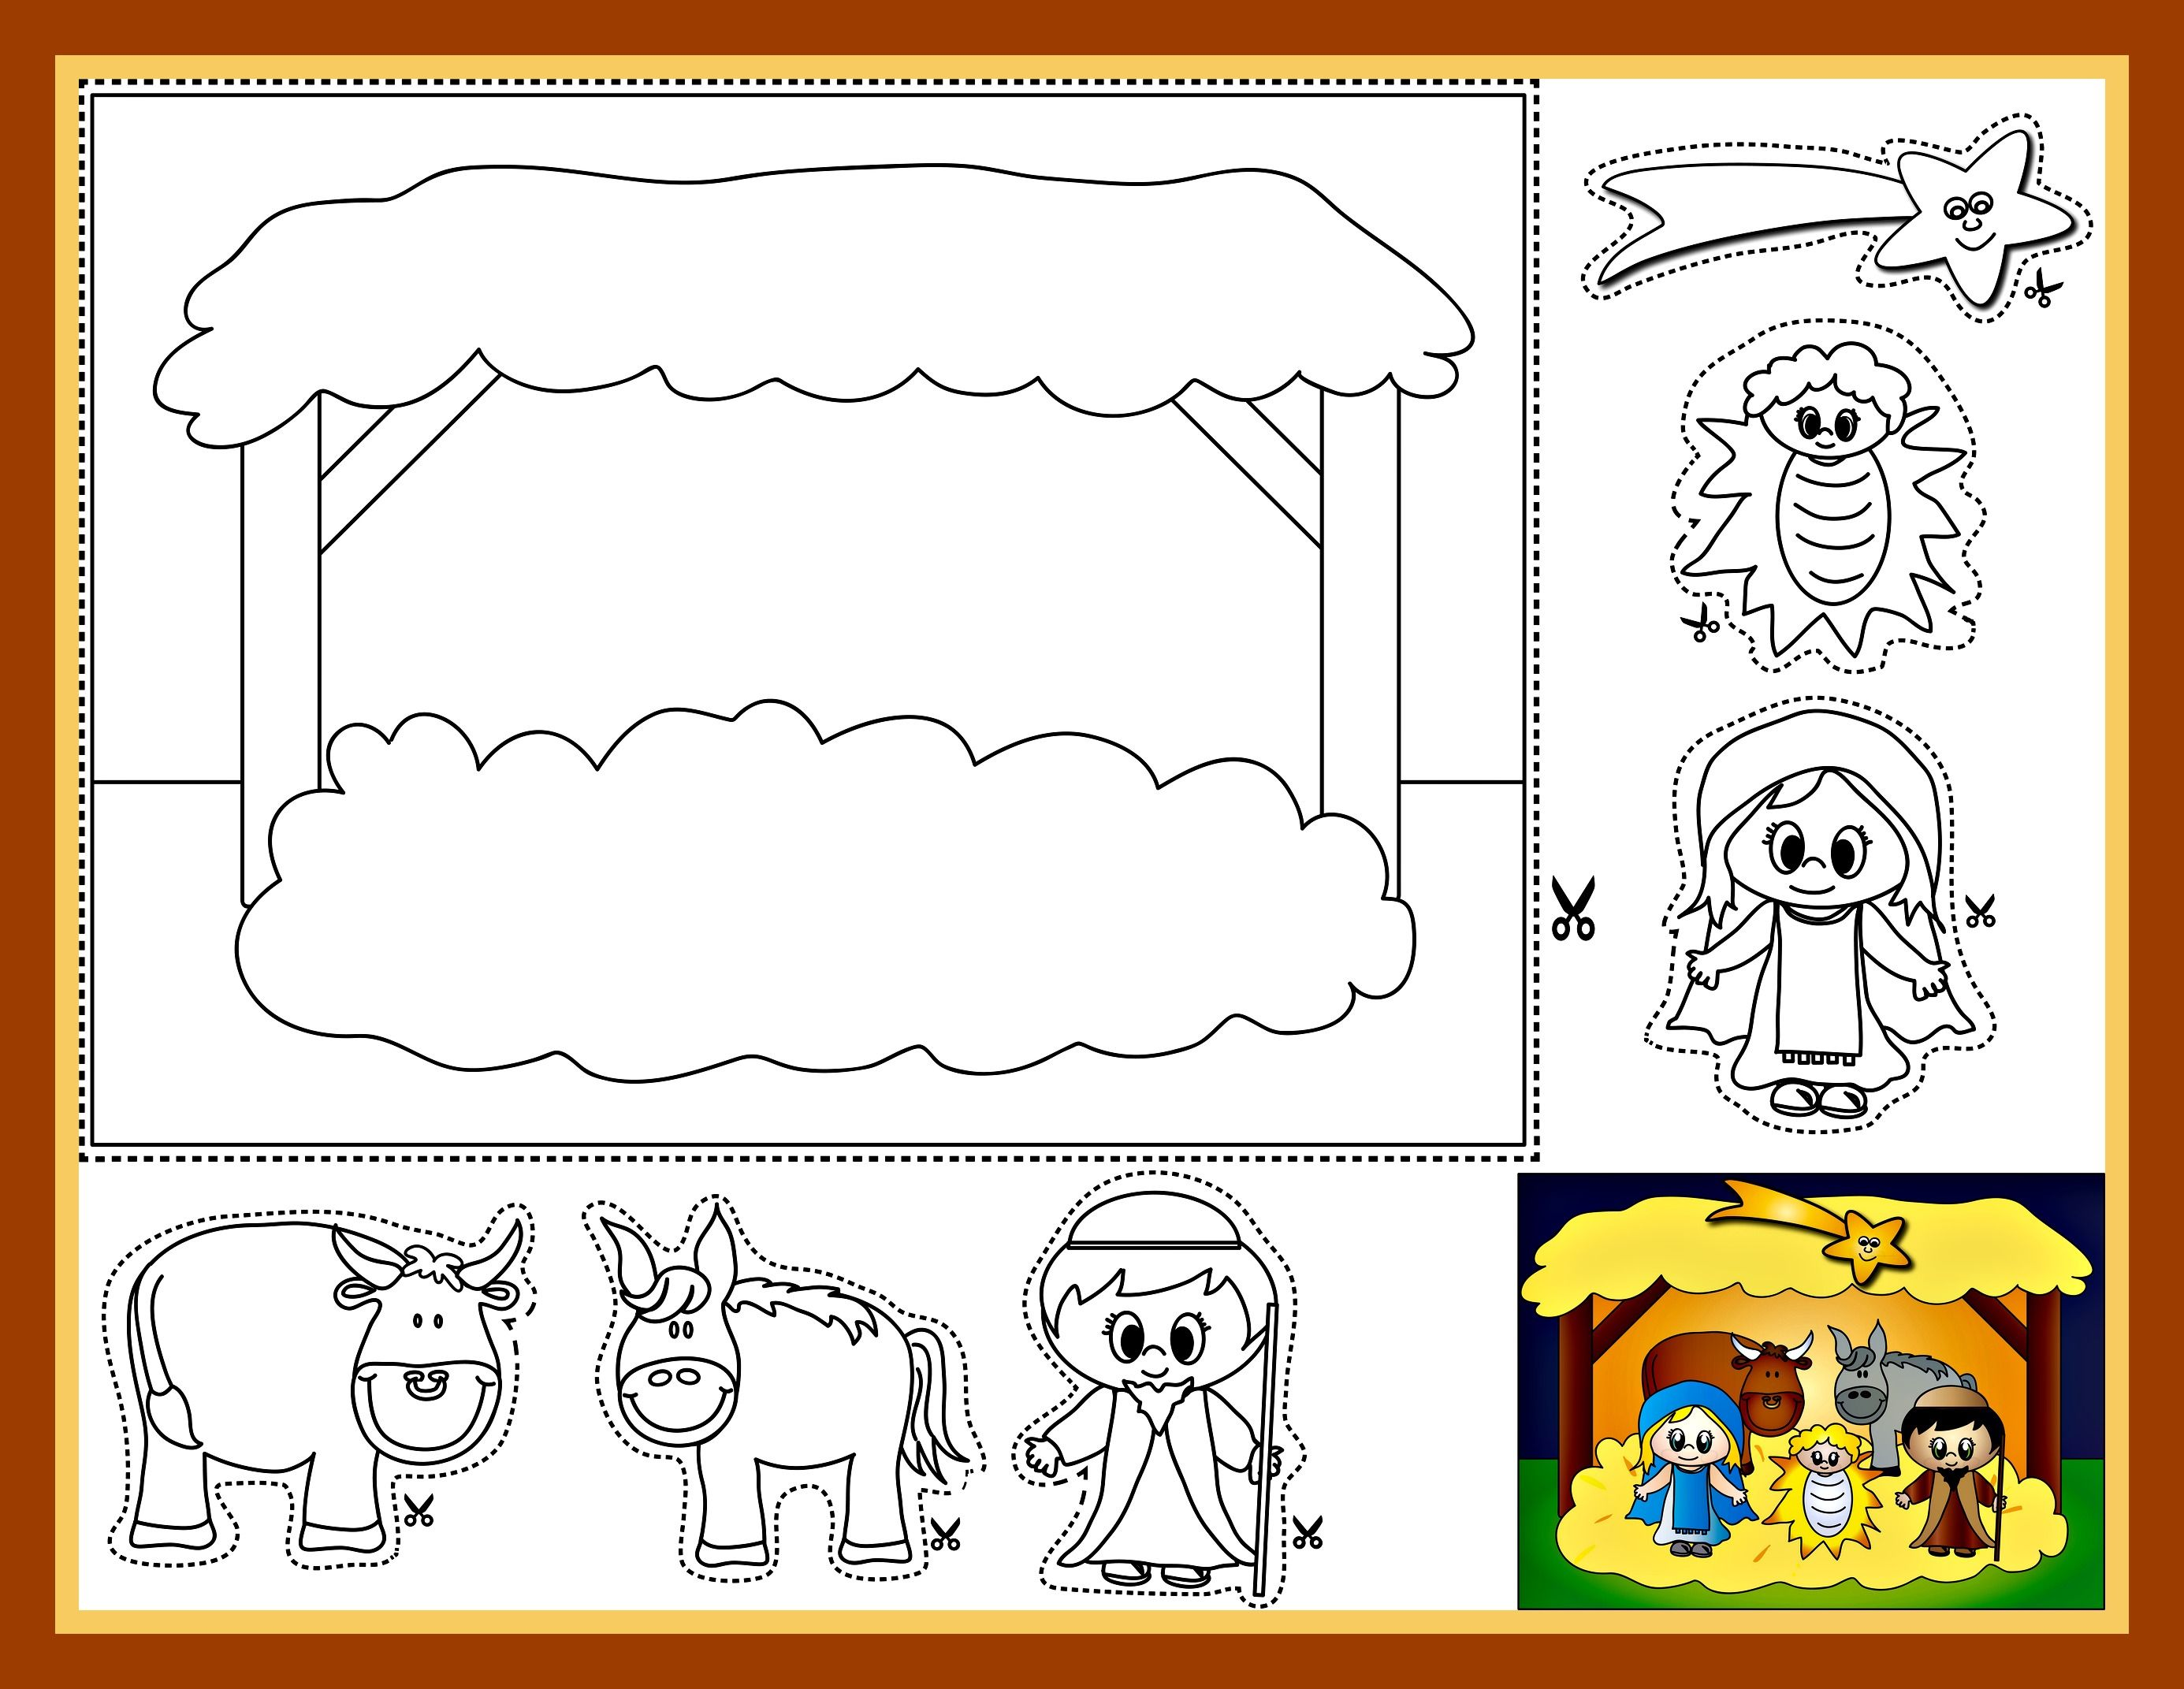 Childrens coloring pages of nativity - Nativity Coloring Sheet Bible Activity For Children